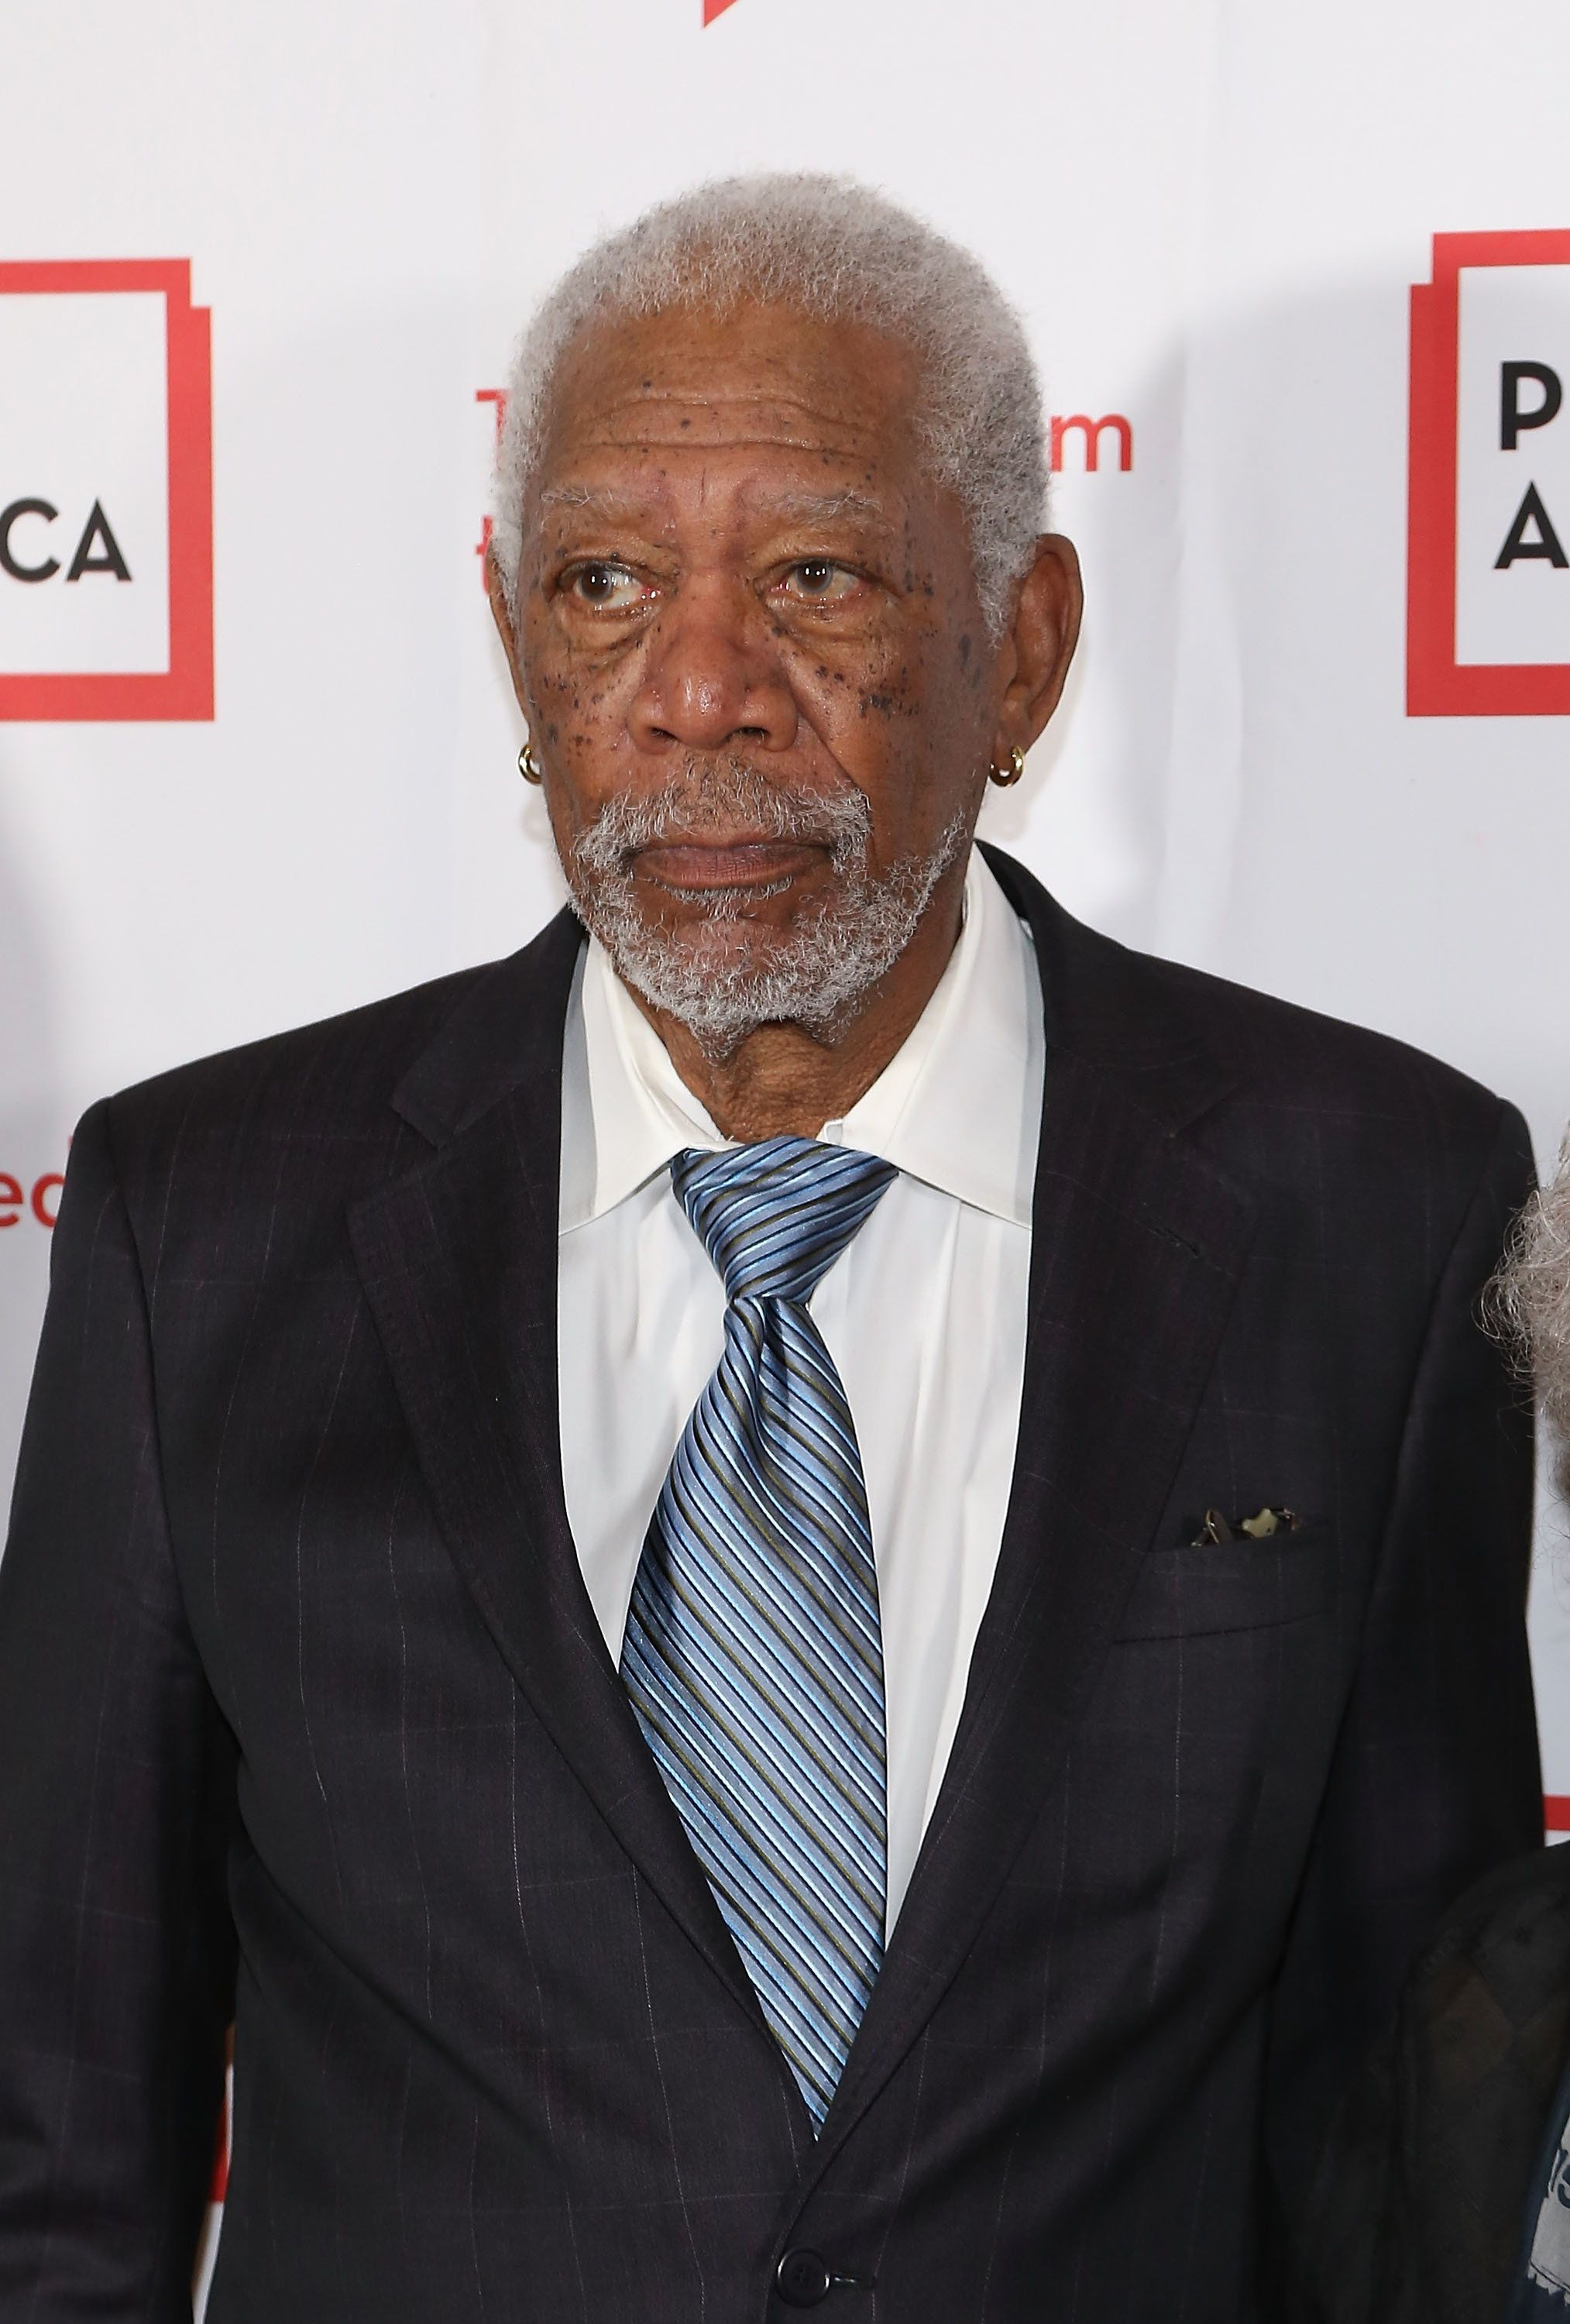 Morgan Freeman Issues Apology After He's Accused Of Sexual Harassment By Multiple Women